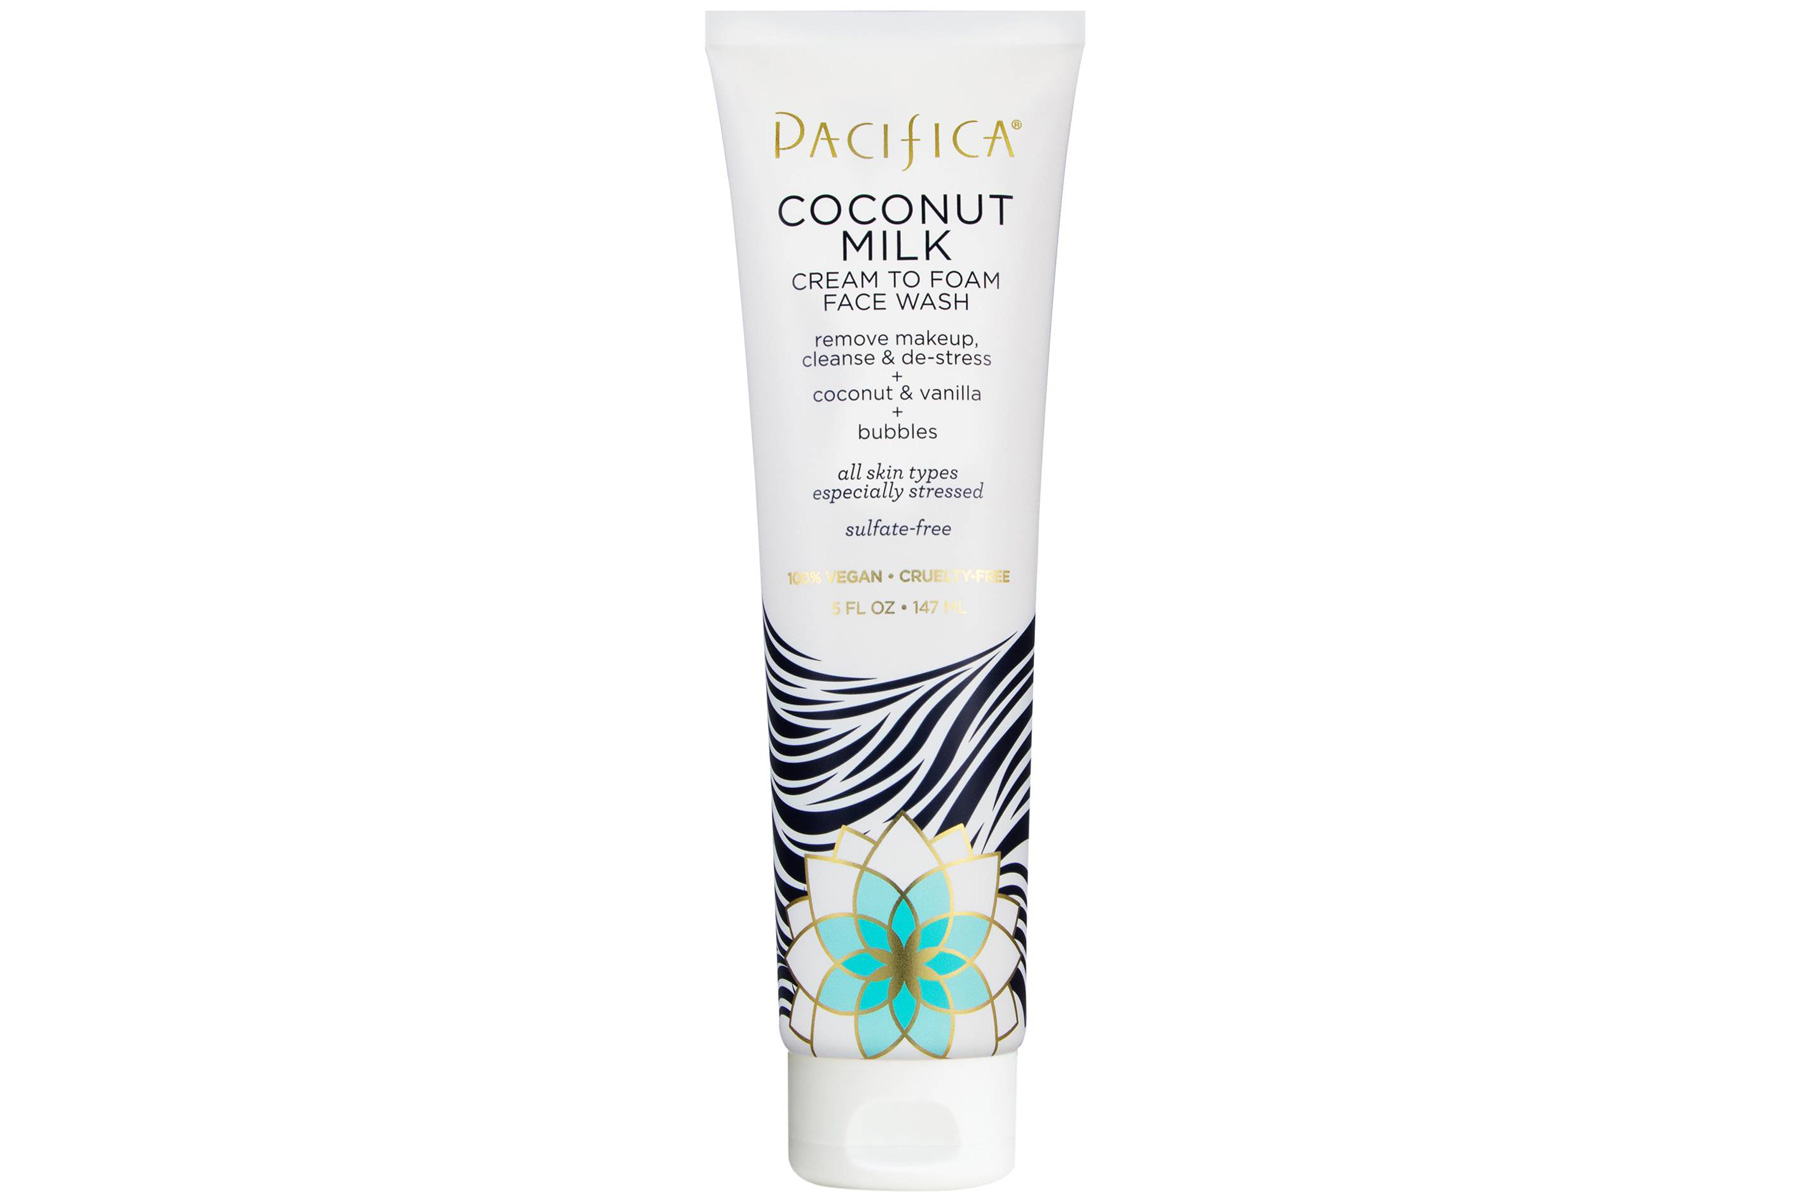 Pacifica Coconut Milk Cream to Foam Face Cleanser